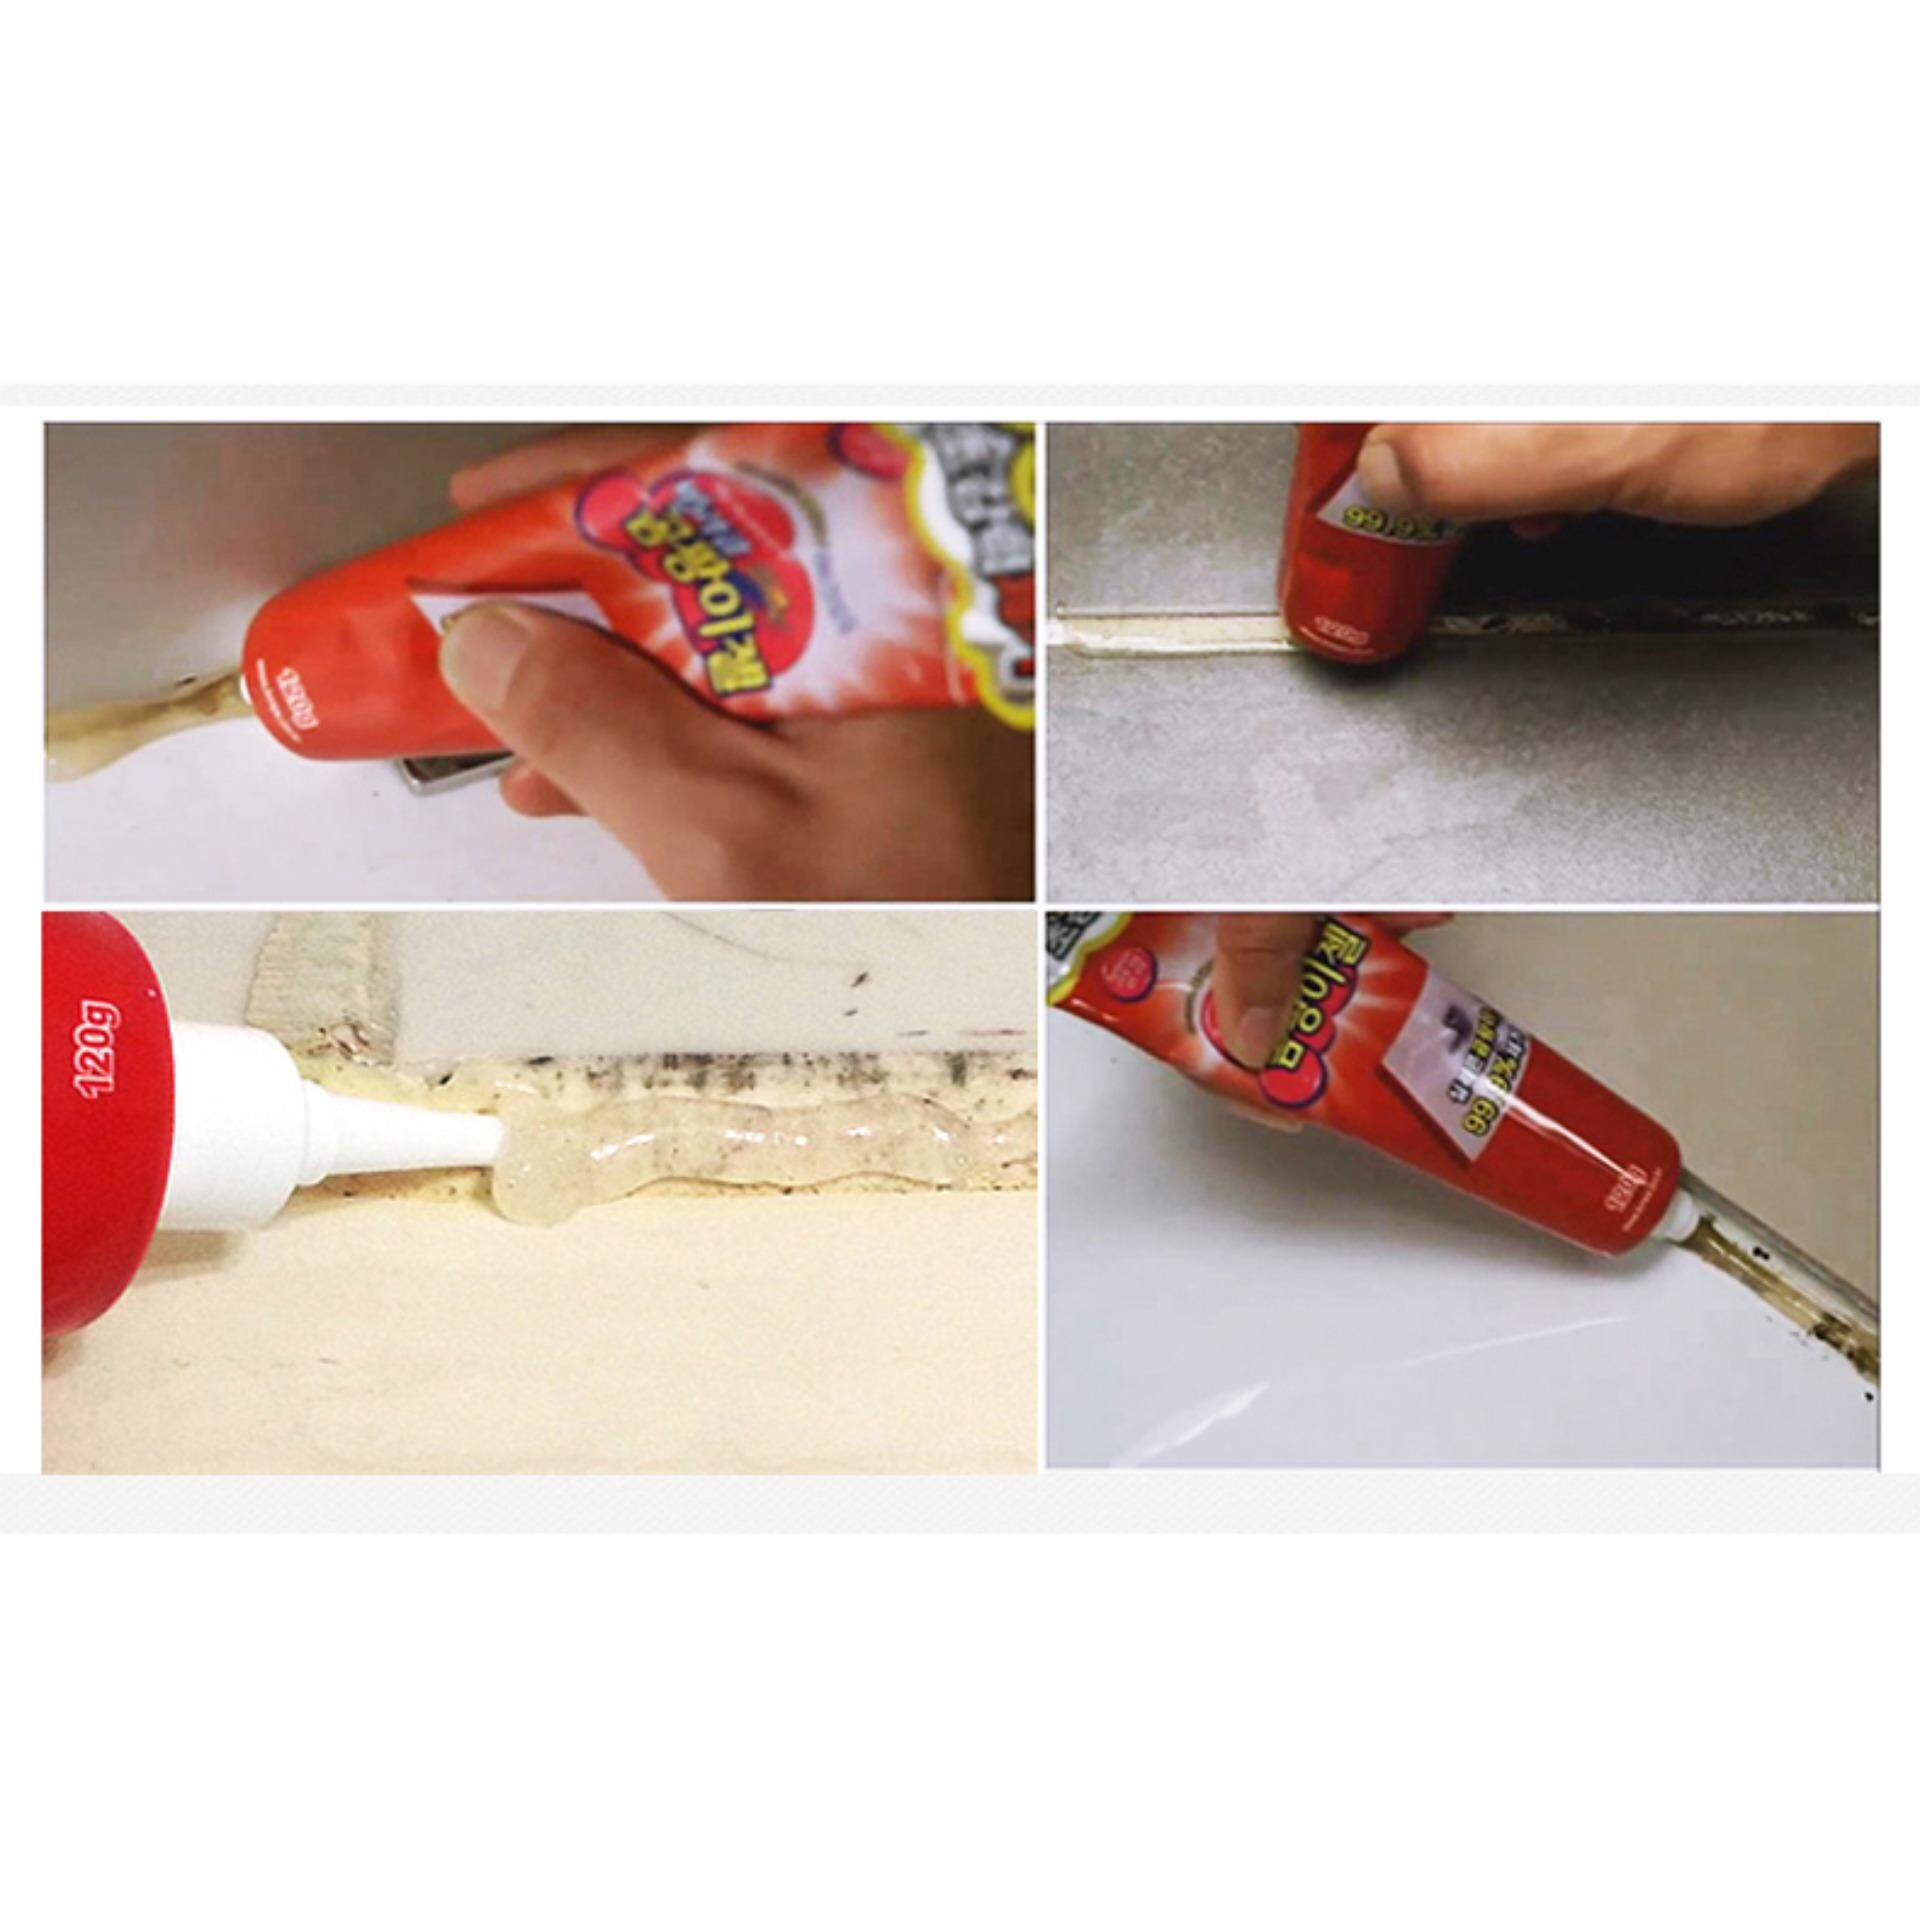 Universal Mold and Fungus Cleaner Paste For Toilet Kitchen Balcony and Tiles From Korea